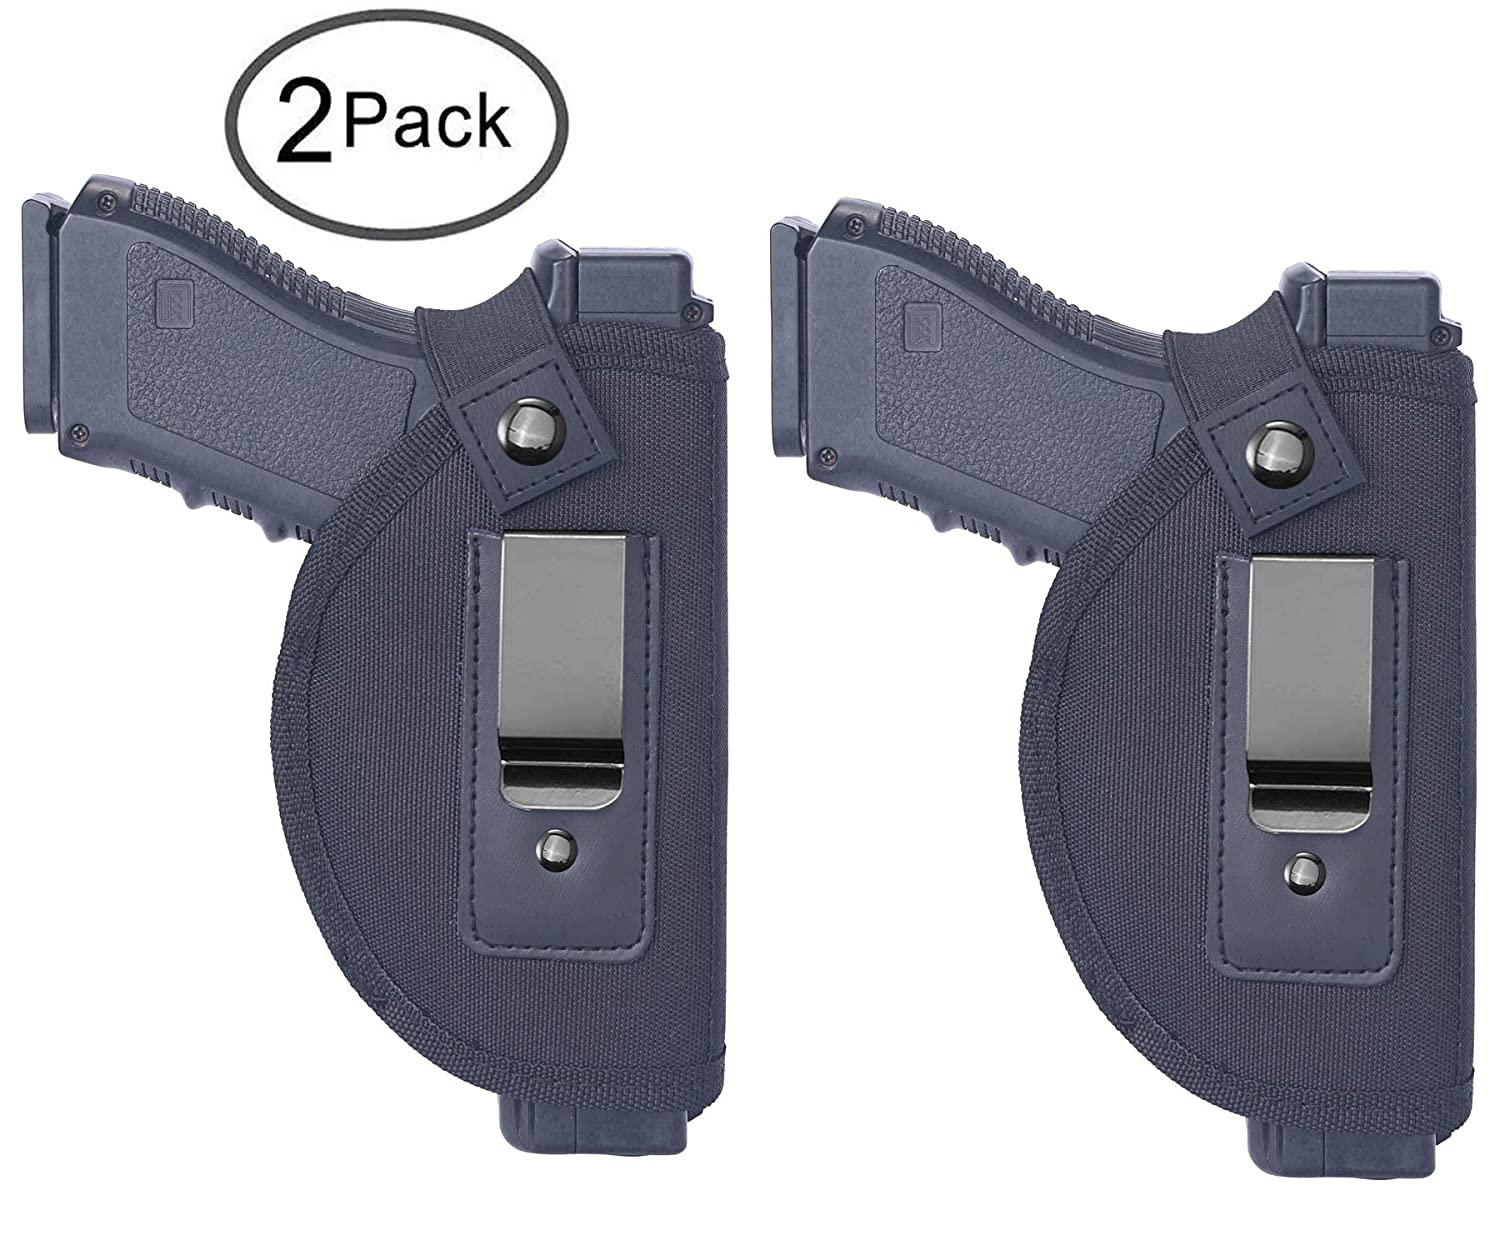 Tenako 2 Pack Universal IWB Holster Inside Waistband Fits All Firearms S&W  M&P Shield 9/40 1911 Taurus PT111 G2 Sig Sauer Glock 17 19 26 27 42 43